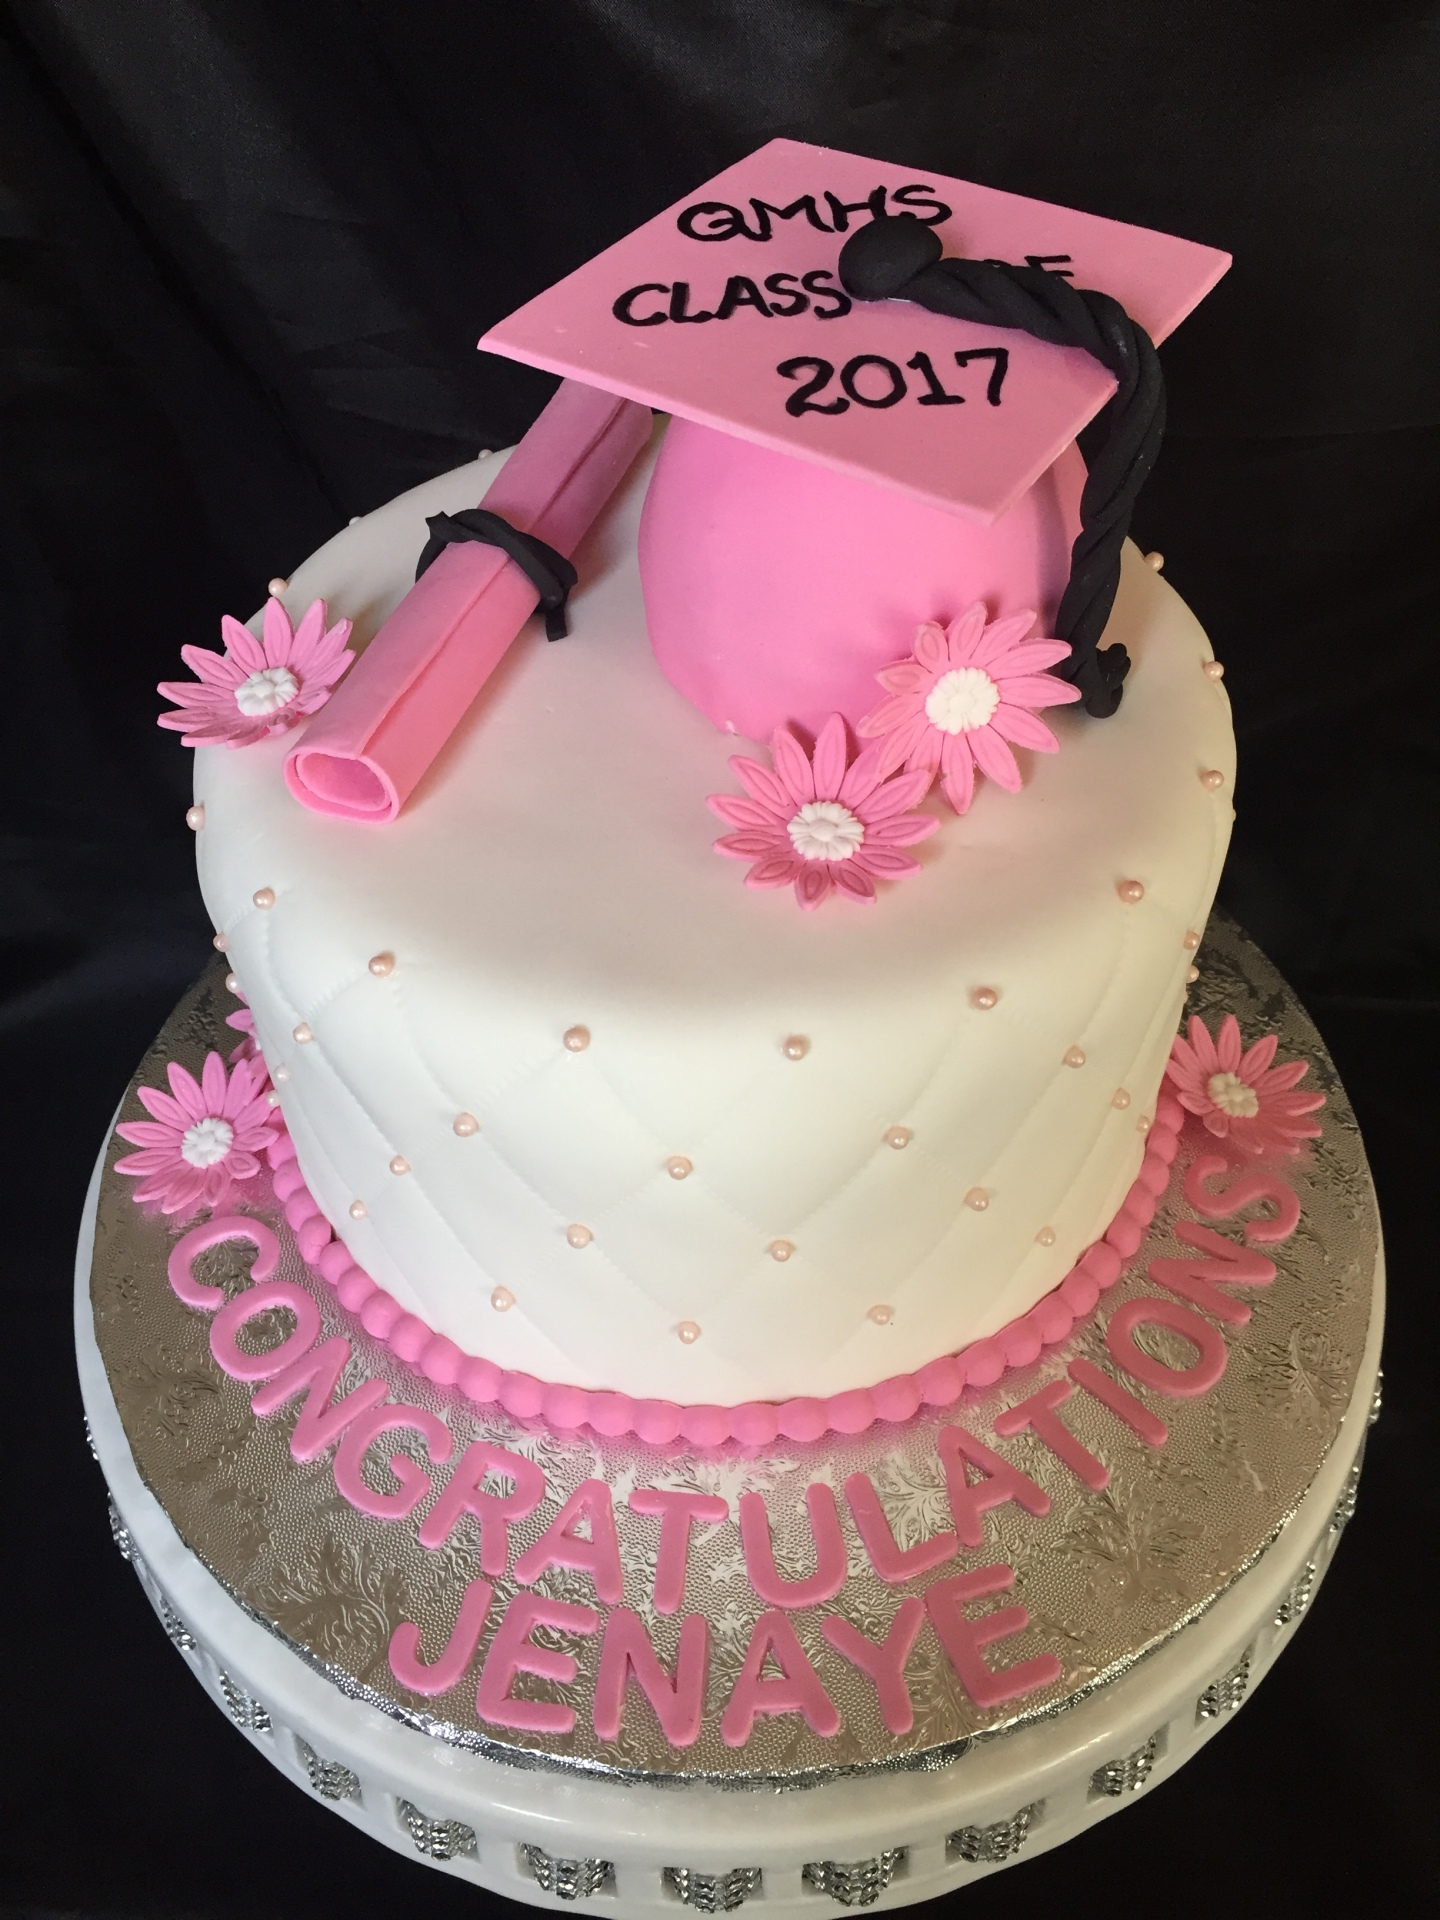 Grad hat round with pink accents